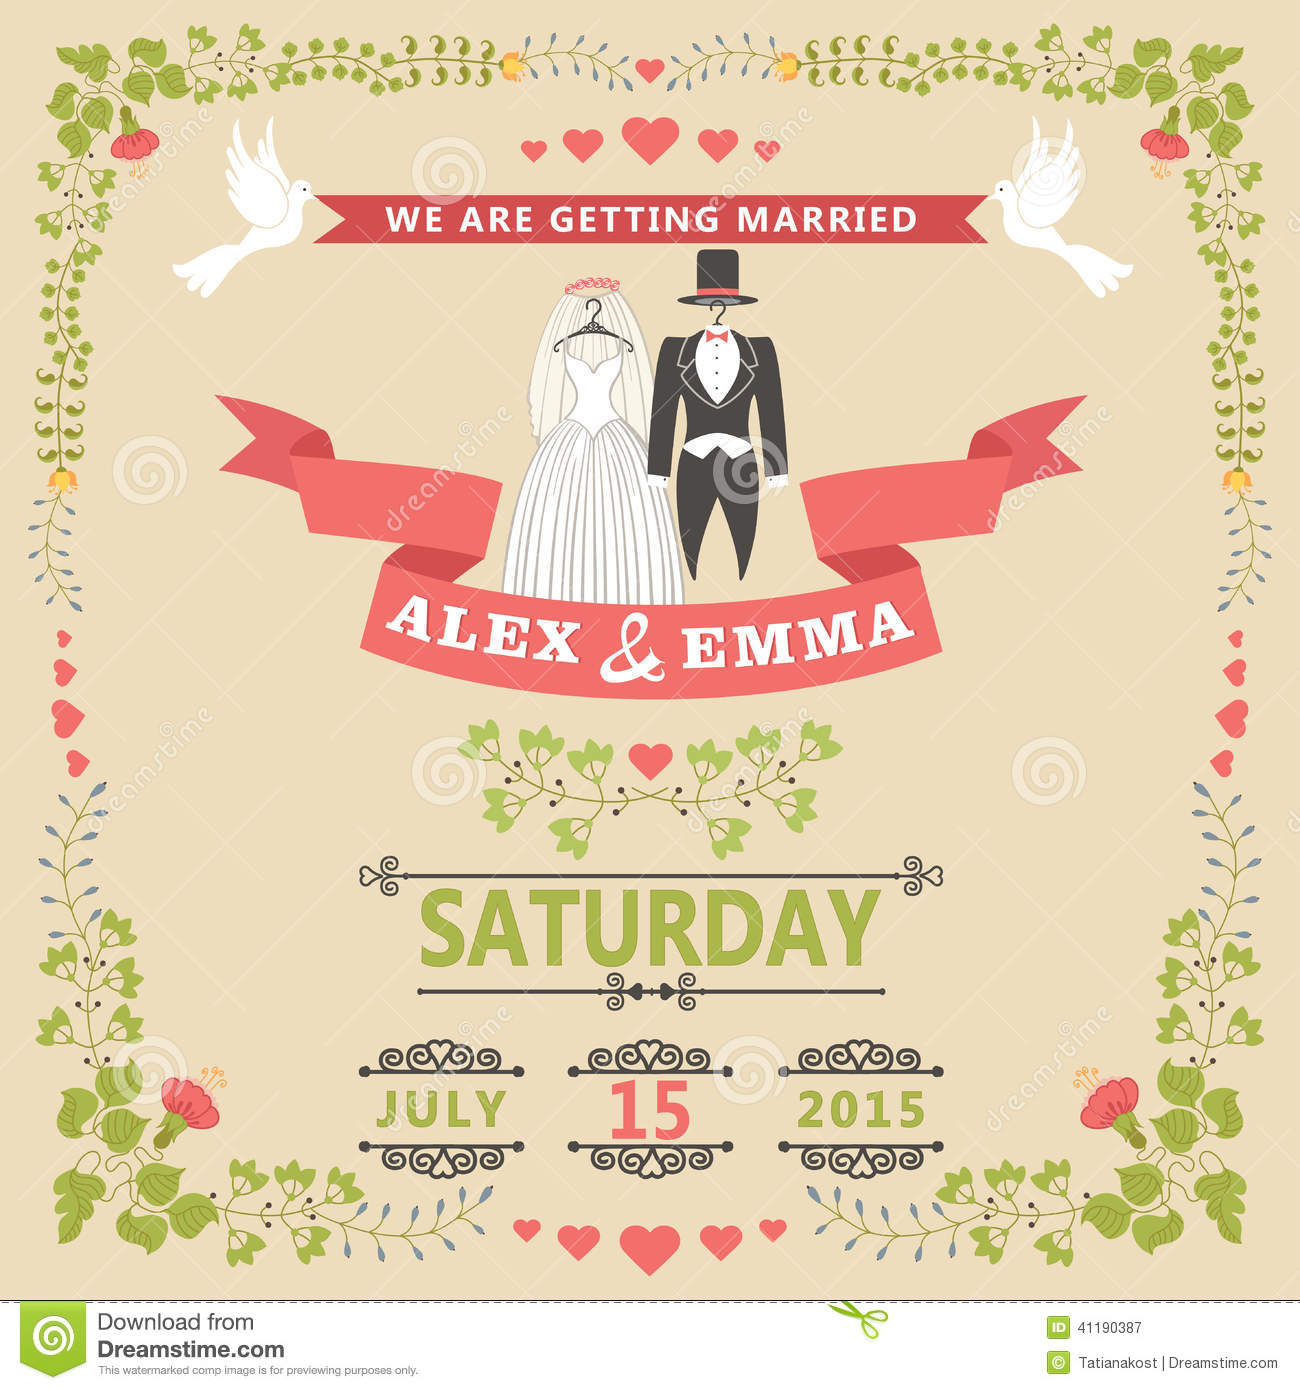 online save the date template free - wedding invitation with wedding clothes and floral frame